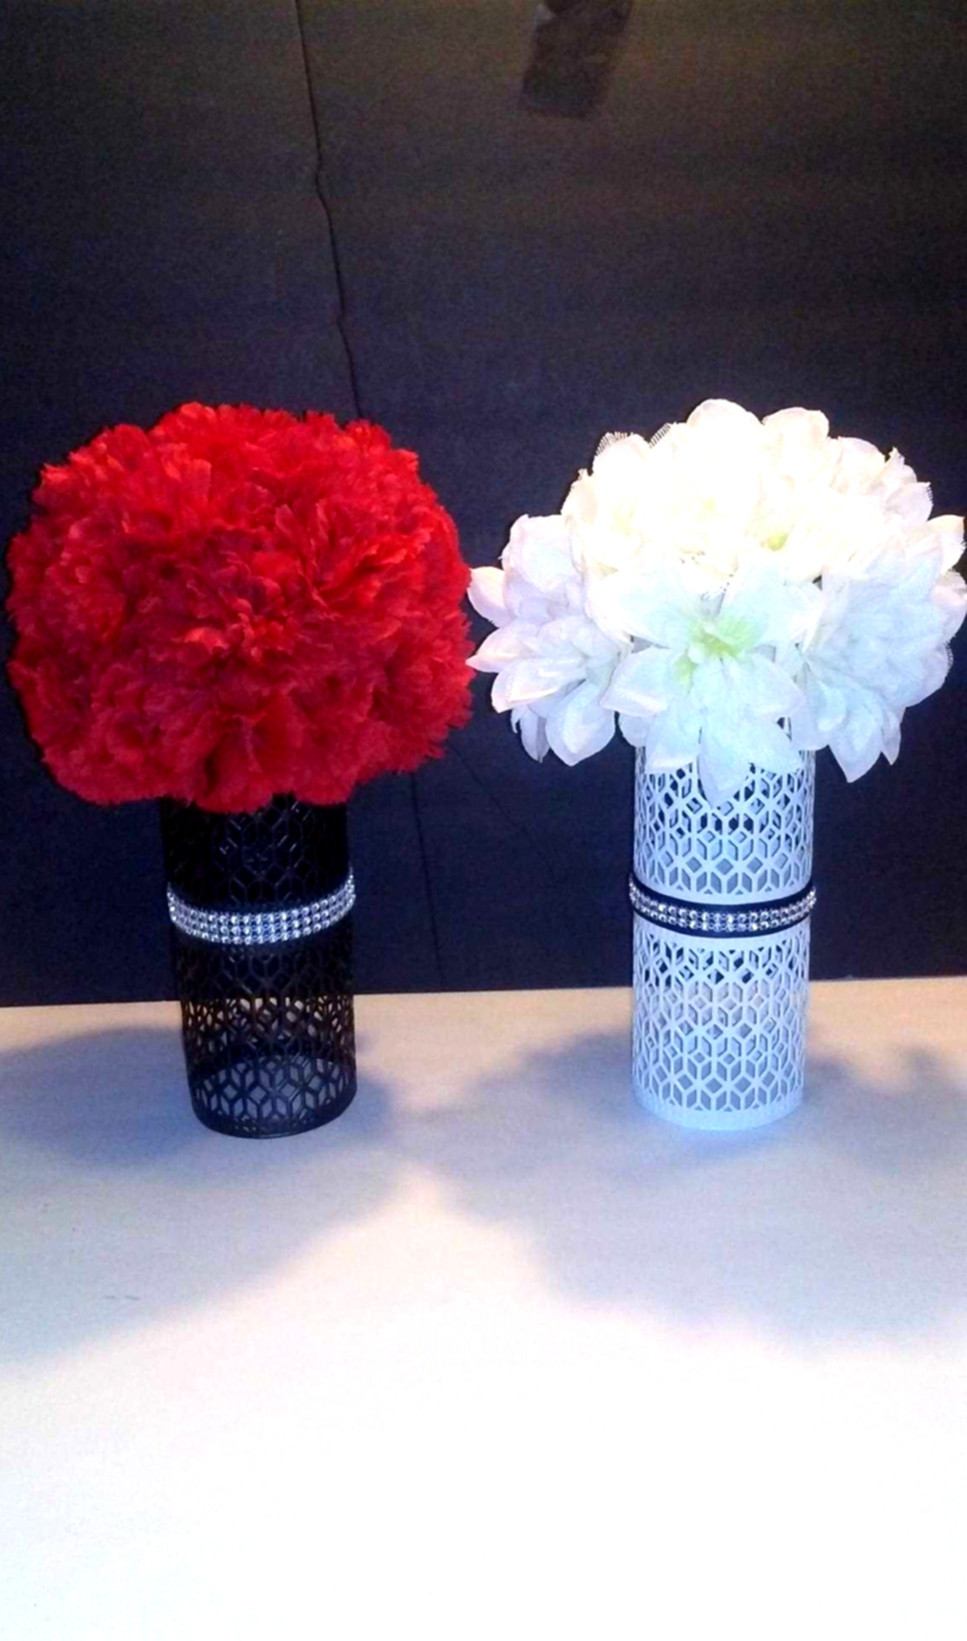 water vase centerpieces of diy dollar tree glam vases diy floral home decor one dollar regarding diy dollar tree glam vases diy floral home decor one dollar pictures